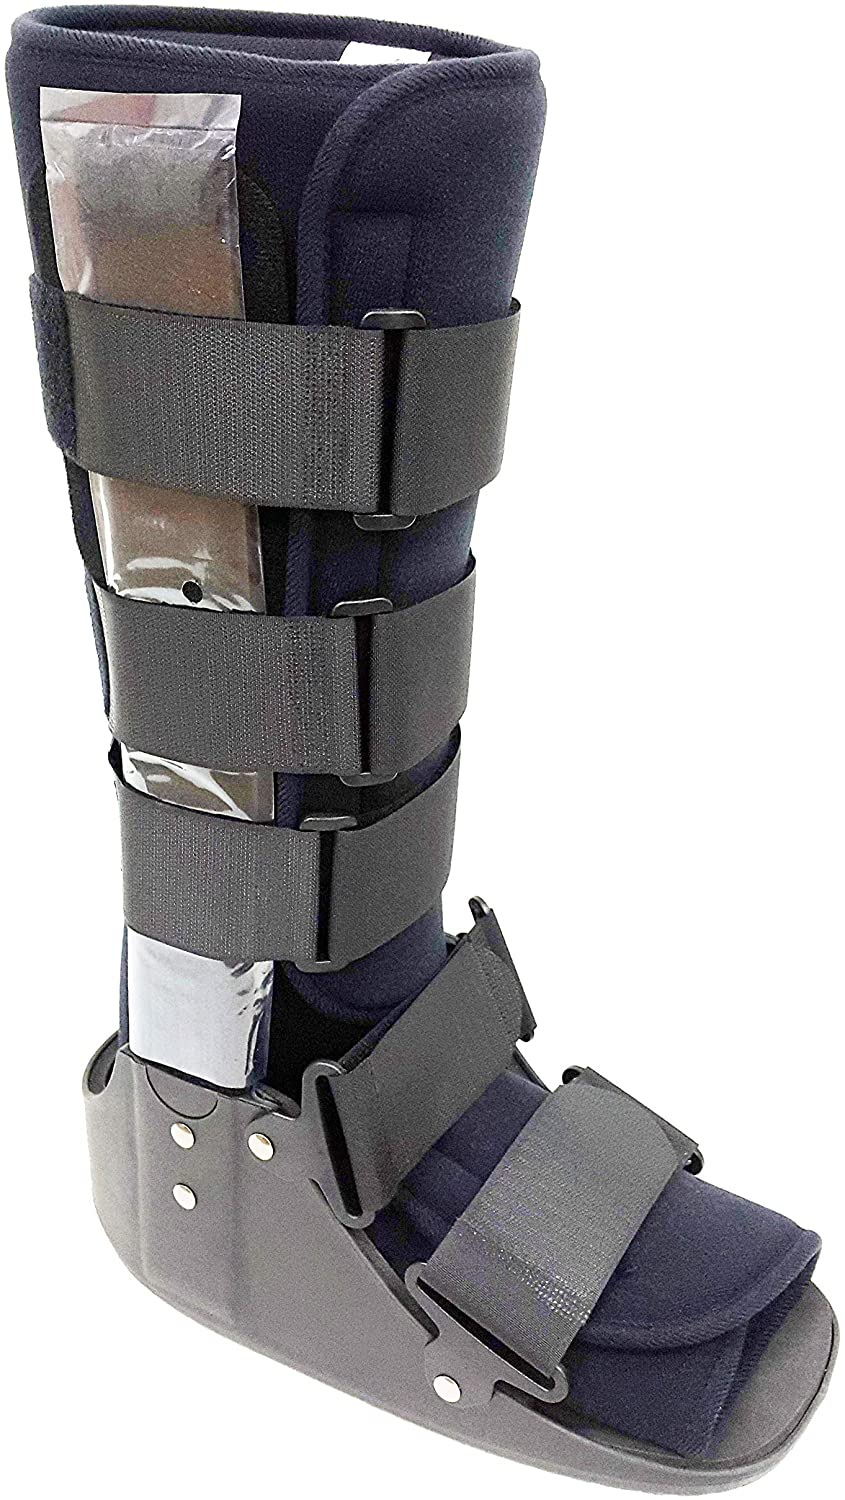 Fixed Cam Fracture Walker Boot with Metal Uprights for Sprains and Fractures, Knee Height (Large)